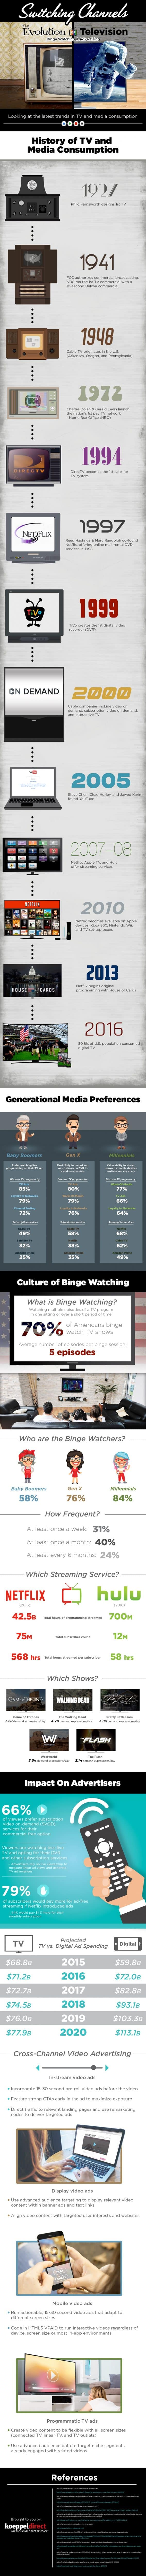 The Evolution Of Television and Binge-Watching